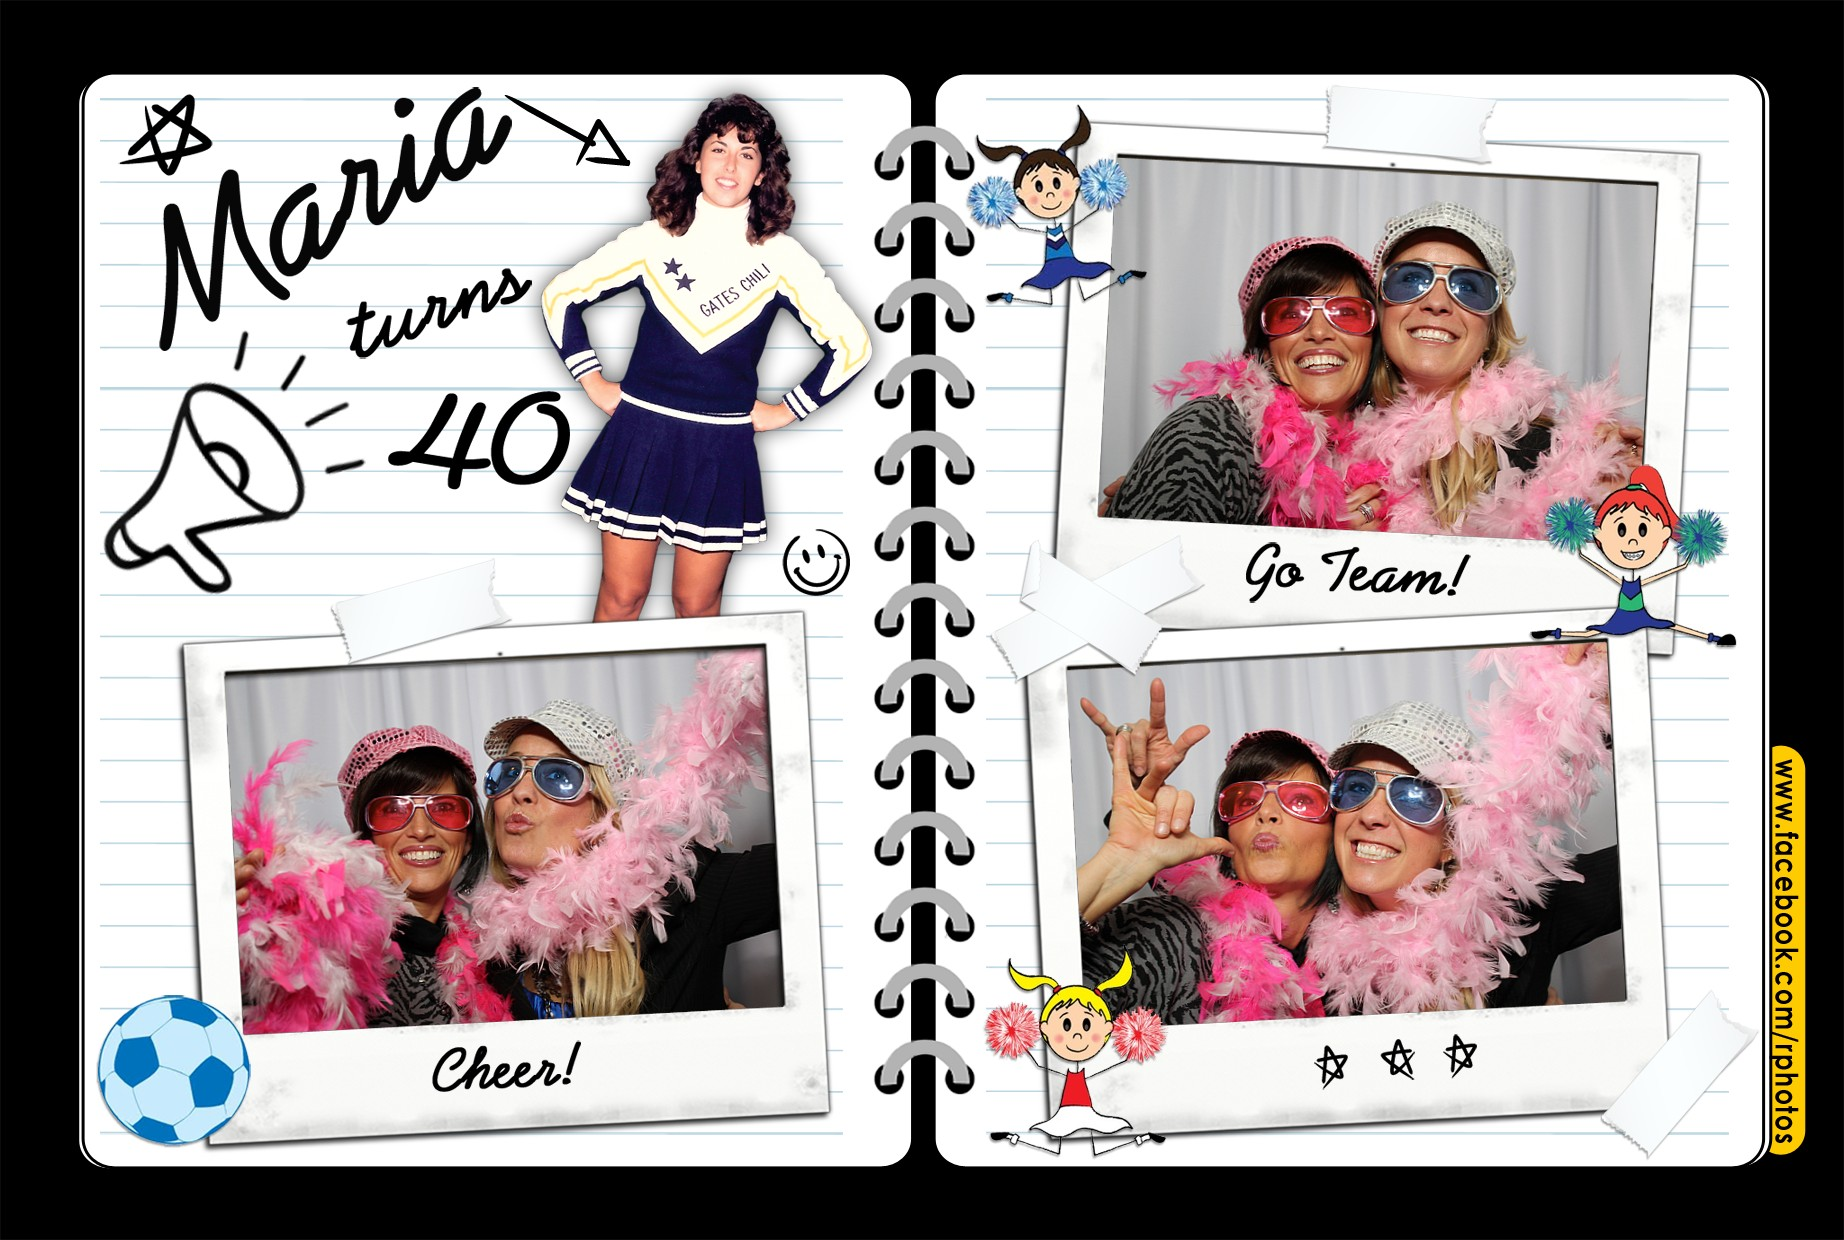 photo-booth-misc-25.jpg